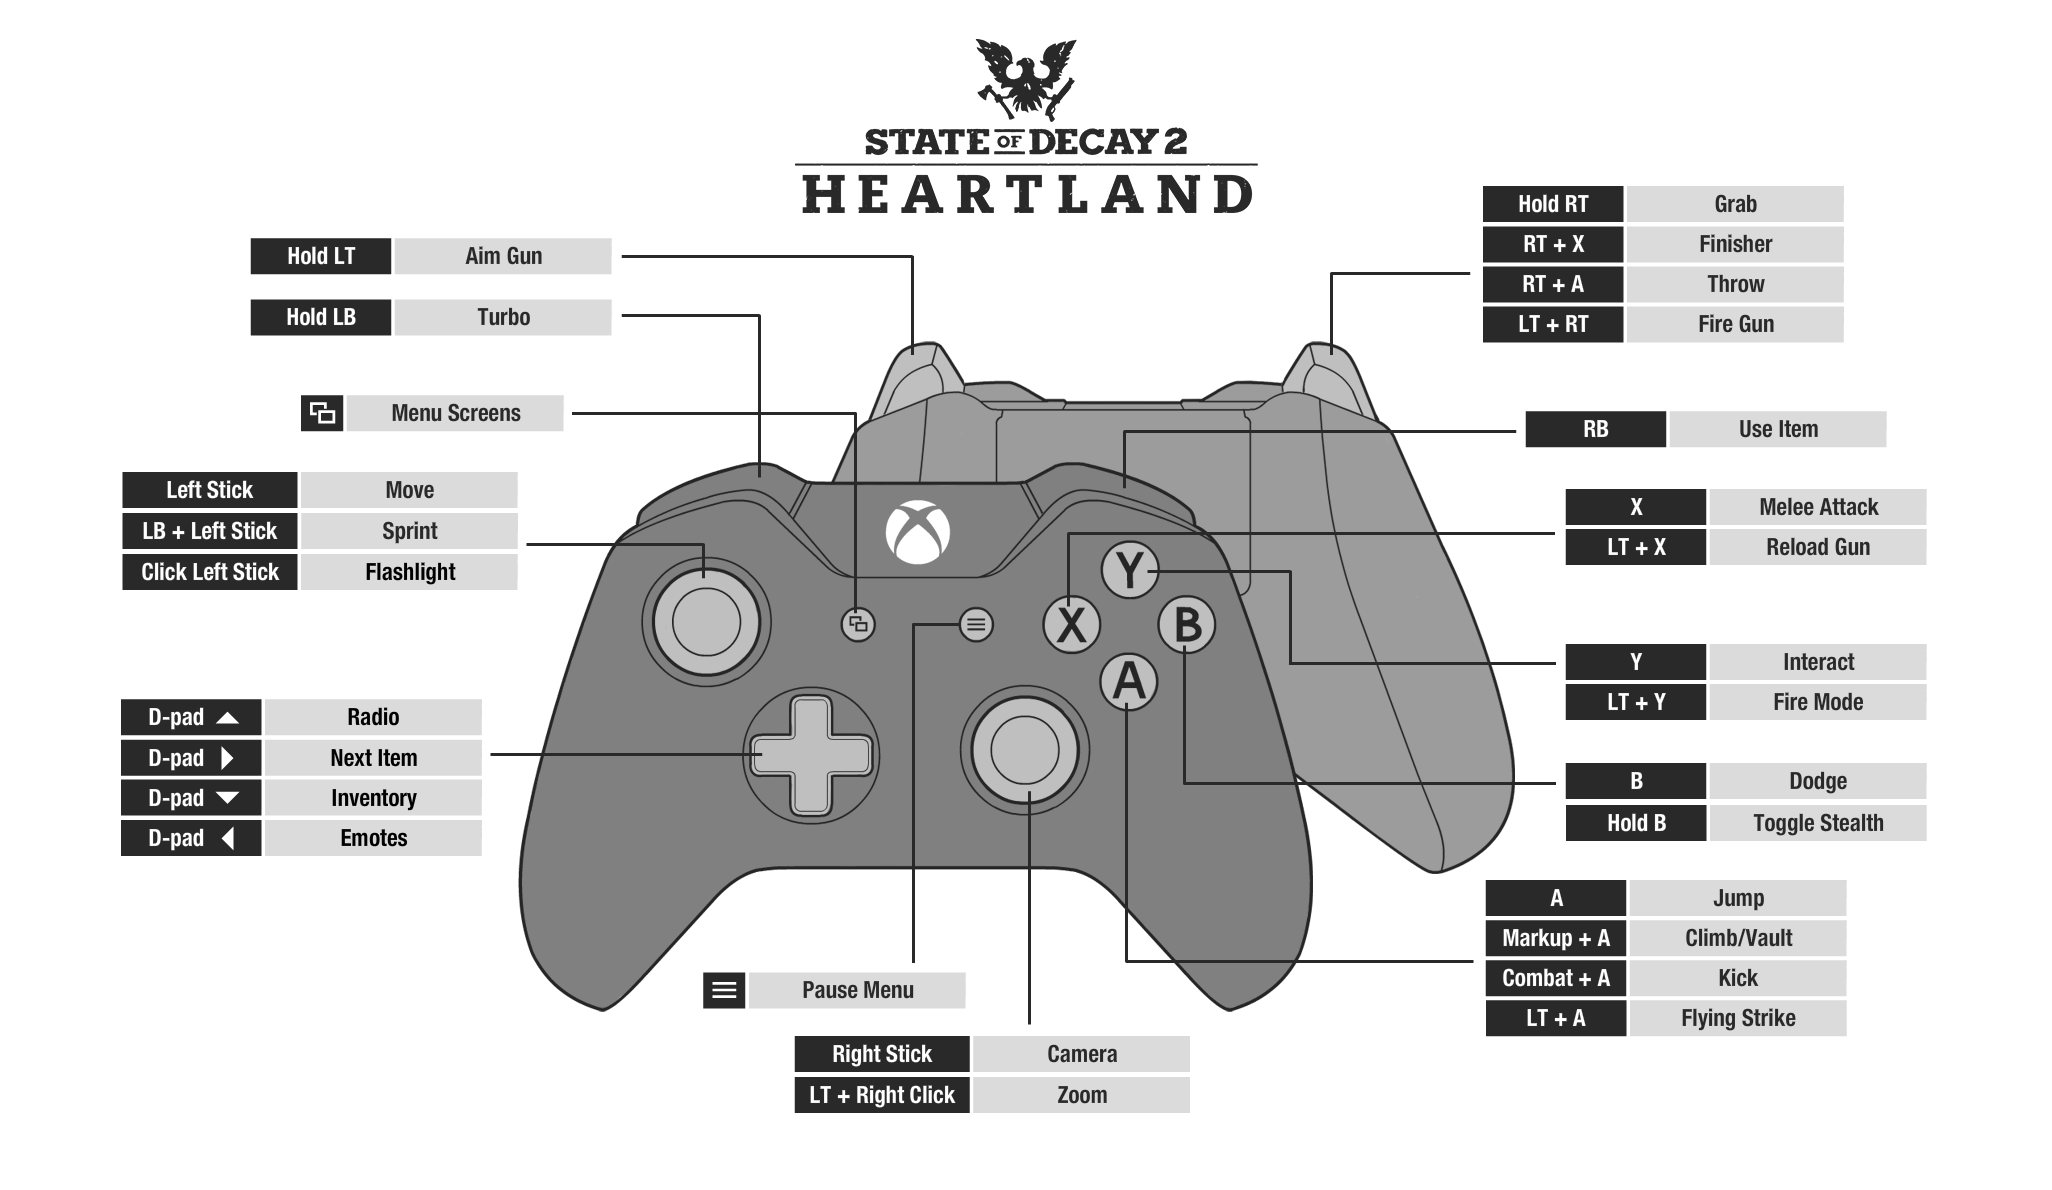 State of Decay 2 Controls